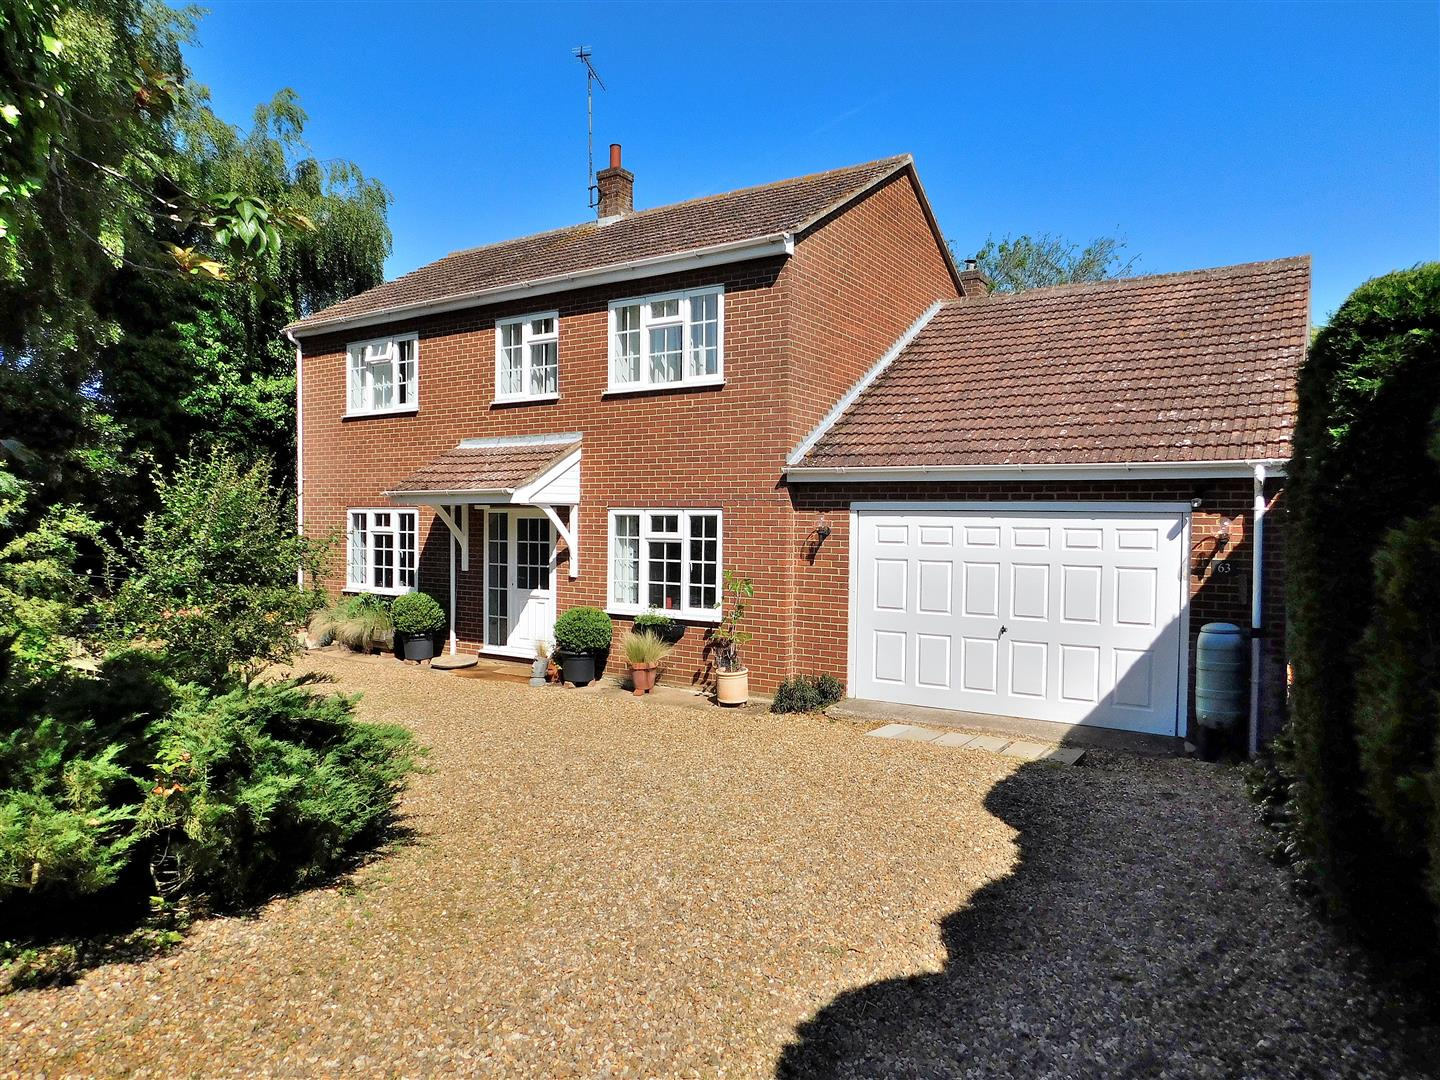 4 bed detached house for sale in Manor Road, King's Lynn, PE31